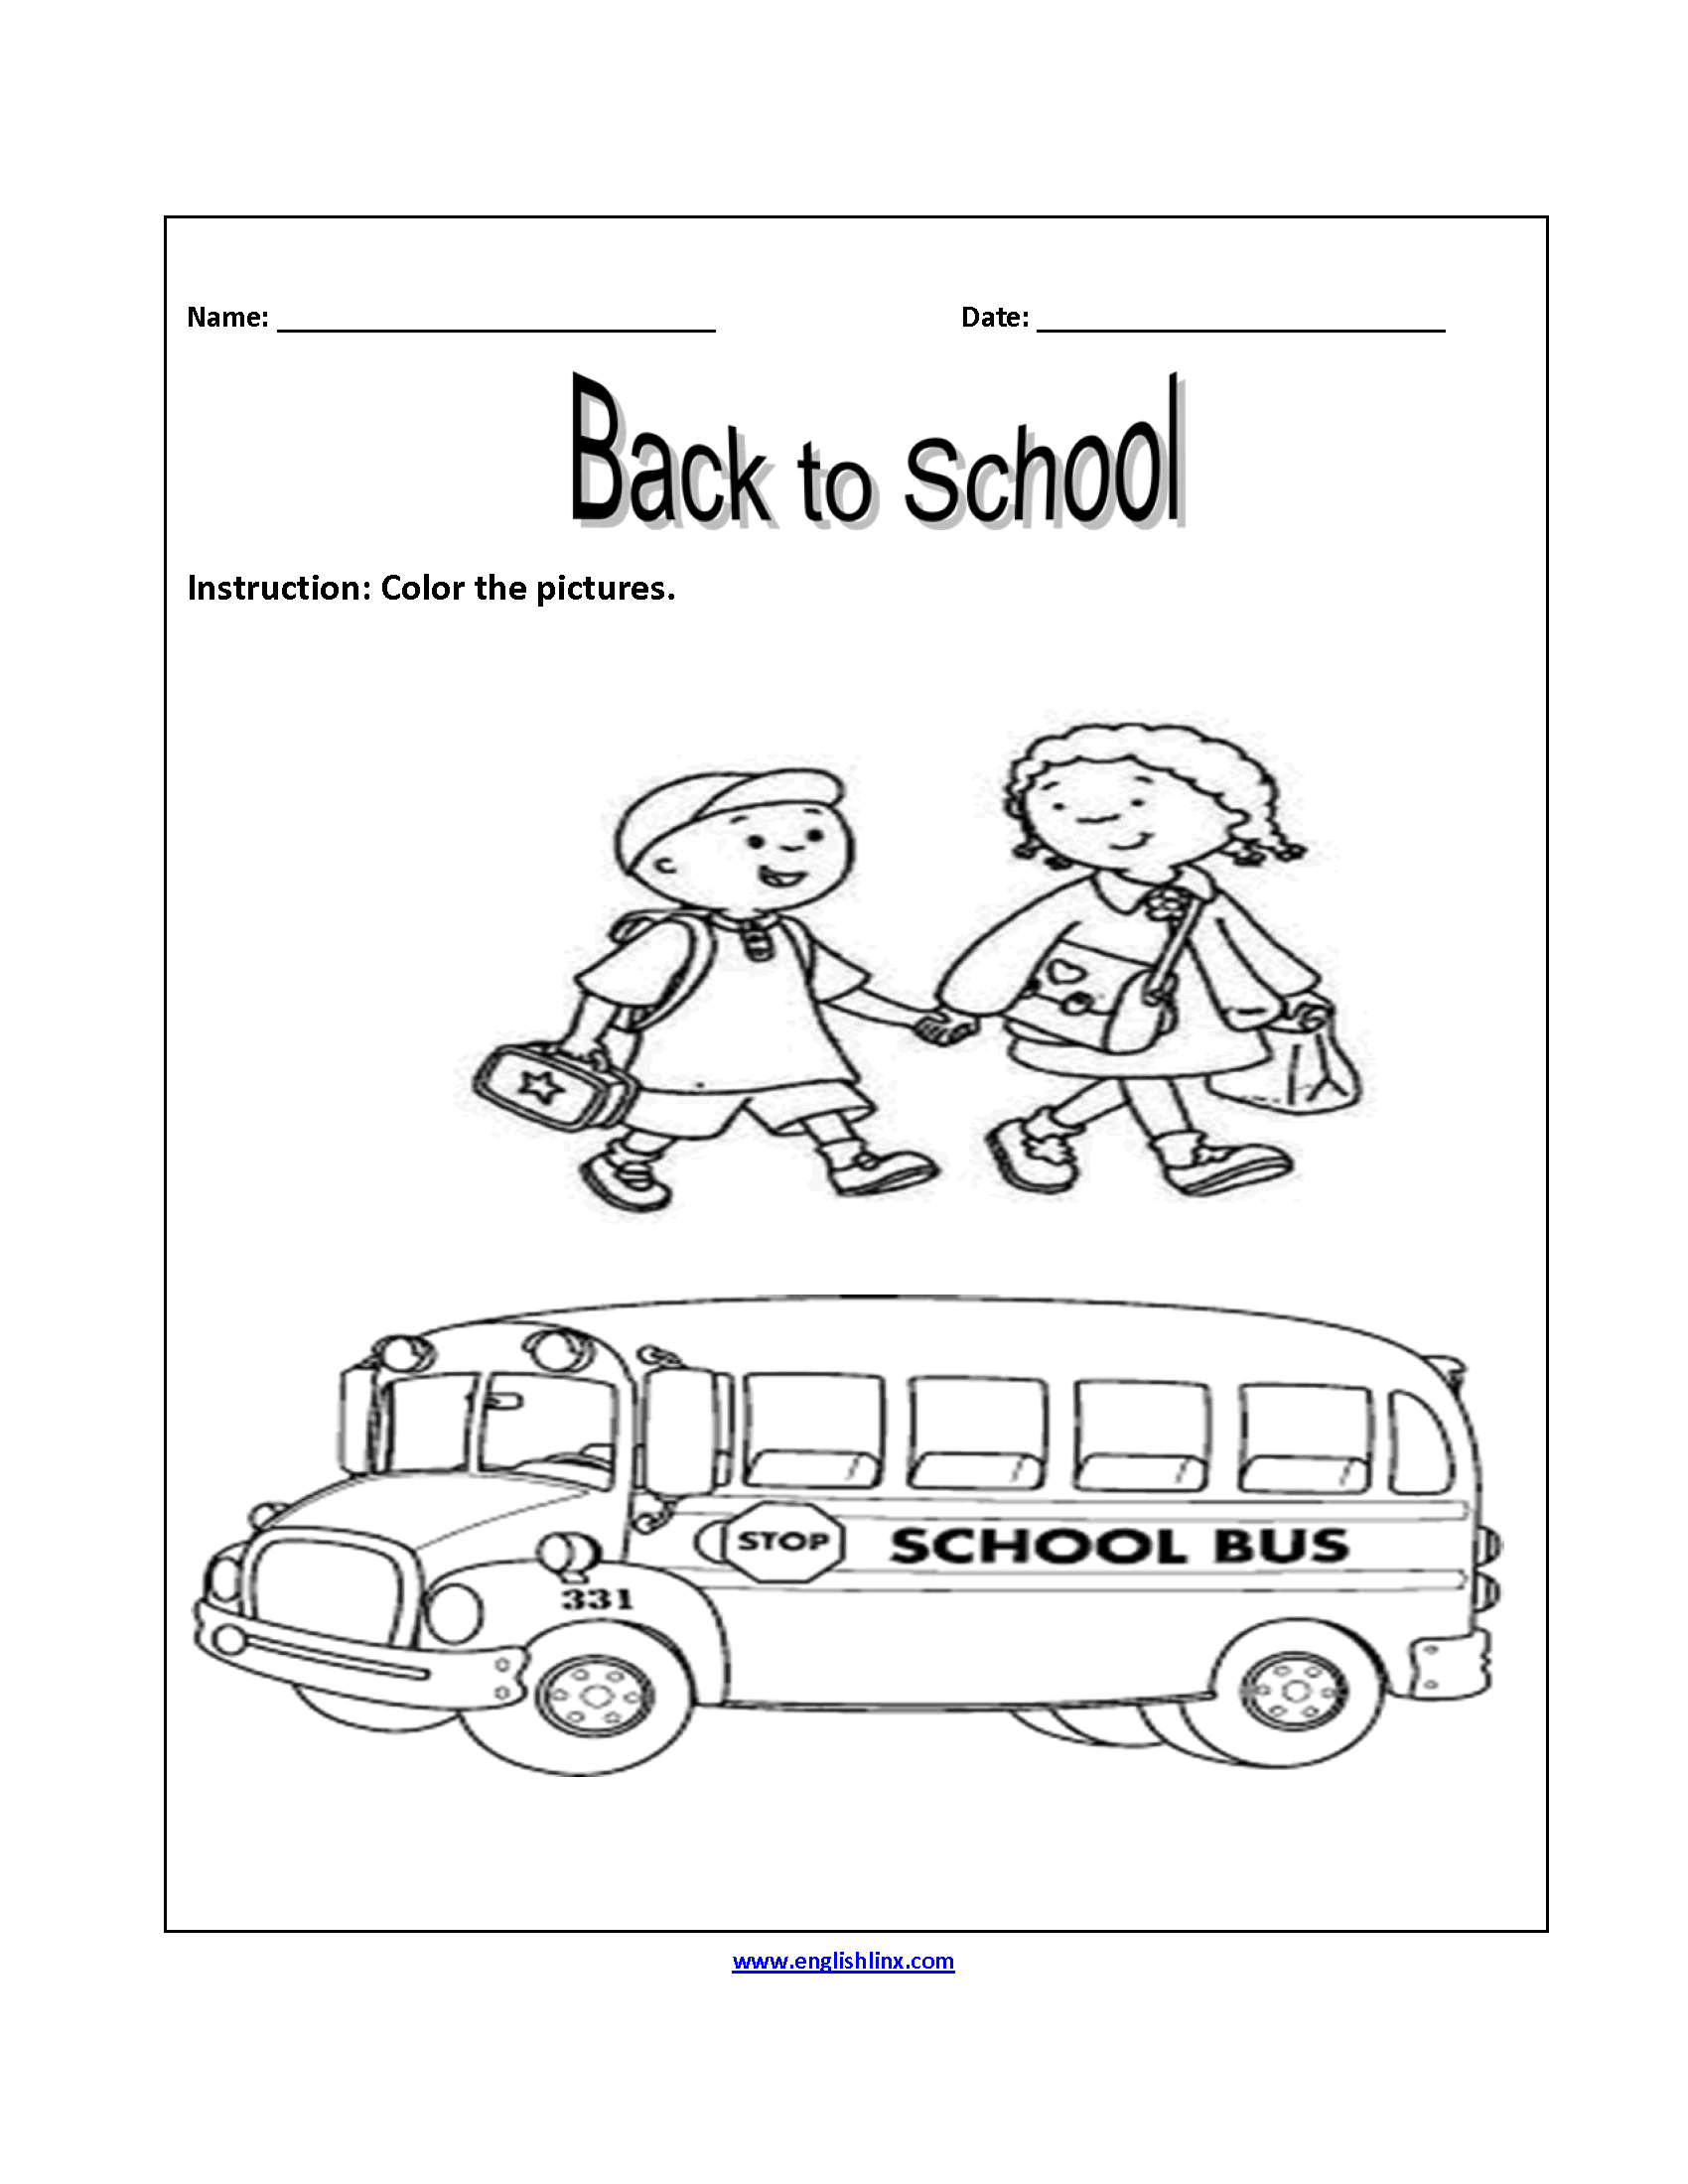 picture relating to Back to School Printable Worksheets identify Again in direction of College or university Worksheets Coloration the Illustrations or photos Again in the direction of